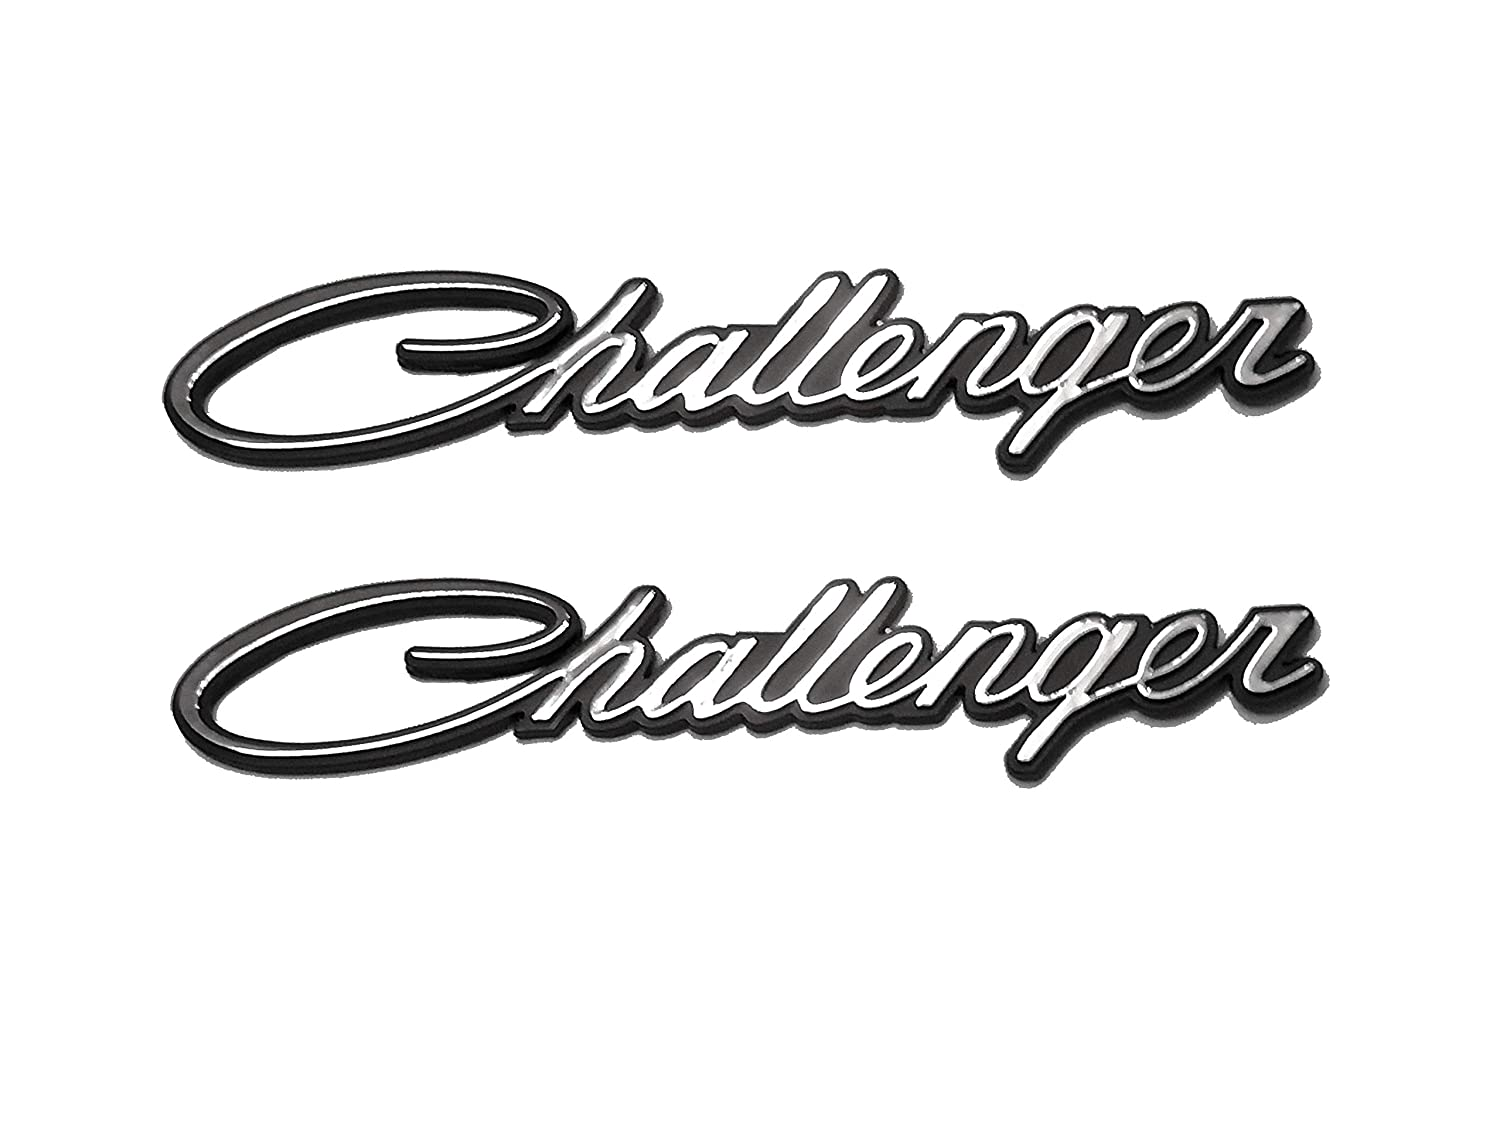 3D Badges Decal embelms for Dodge Chrysler Mopar Challenger 2PCS Replacement Challenger Nameplate Emblems Green